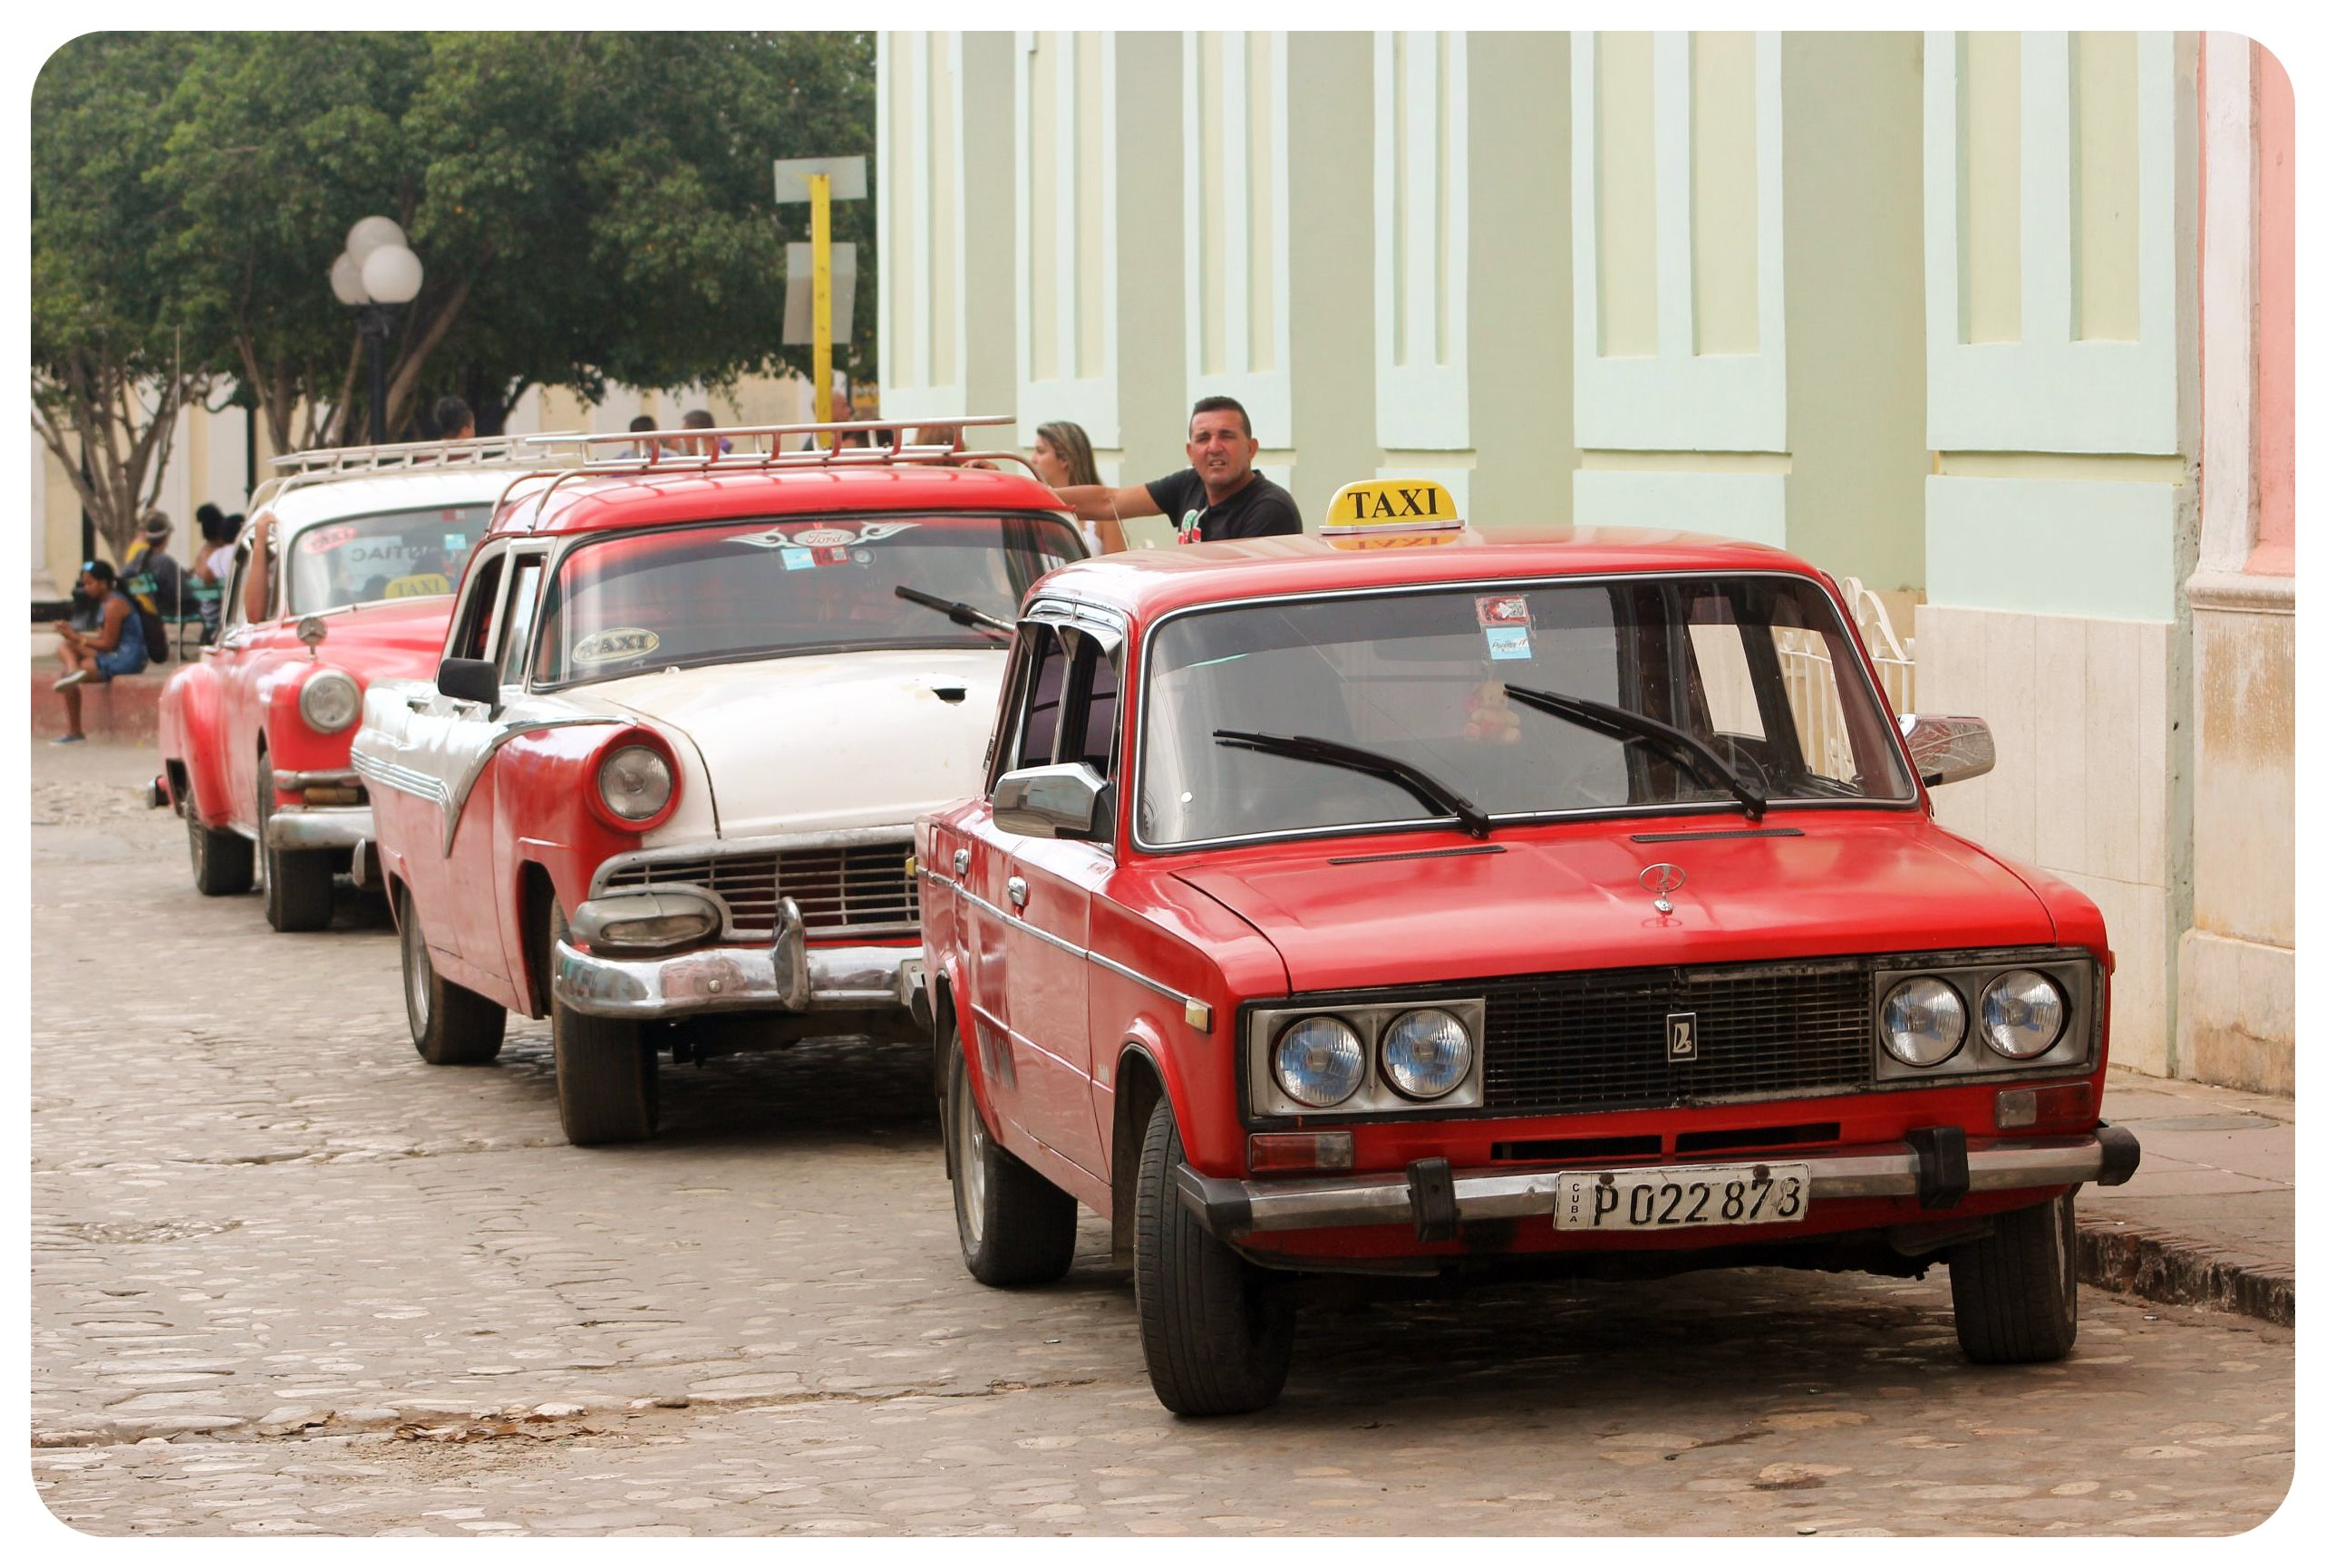 taxis in trinidad